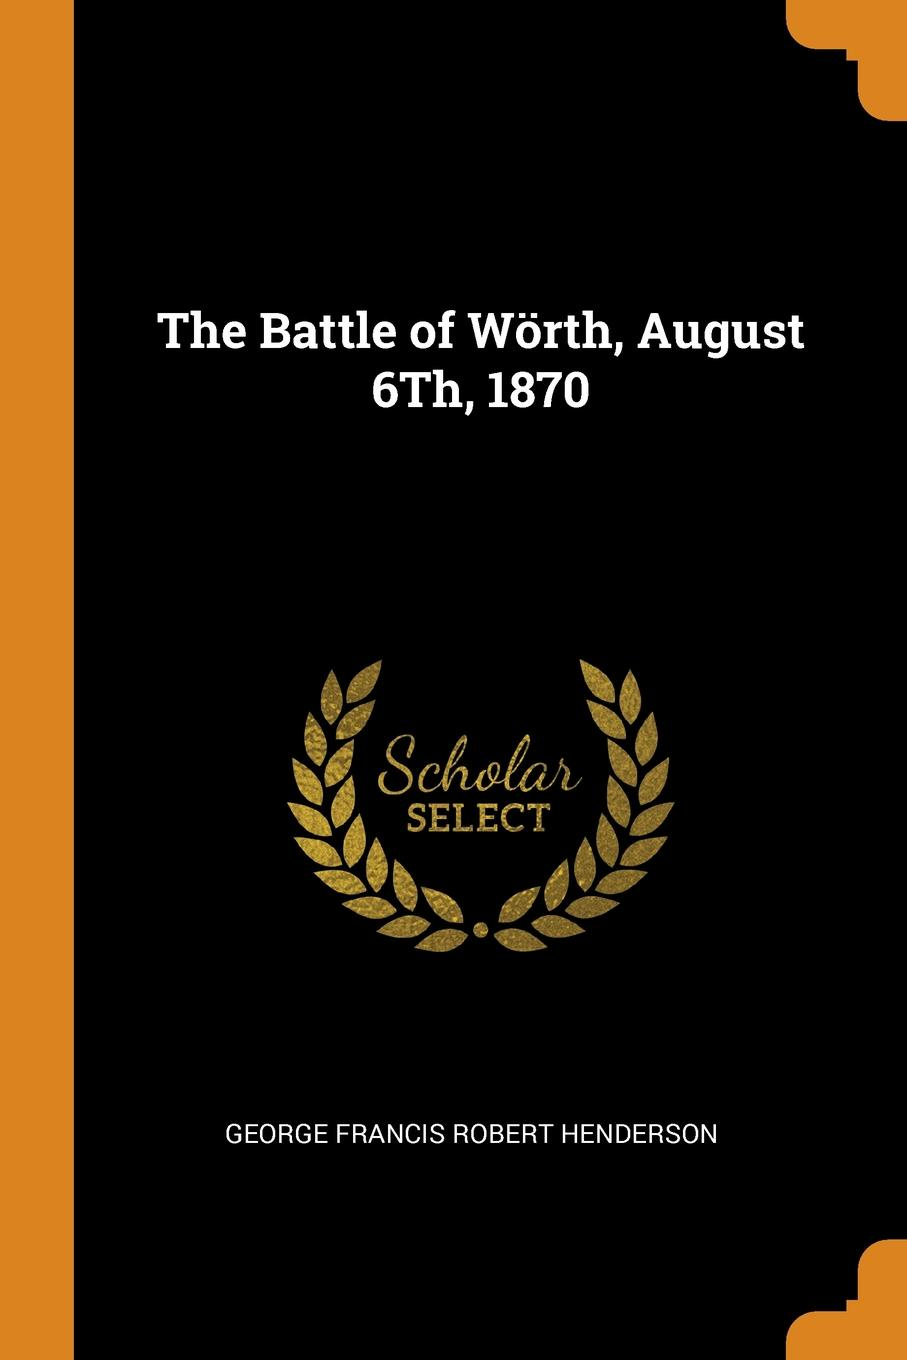 The Battle of Worth, August 6Th, 1870